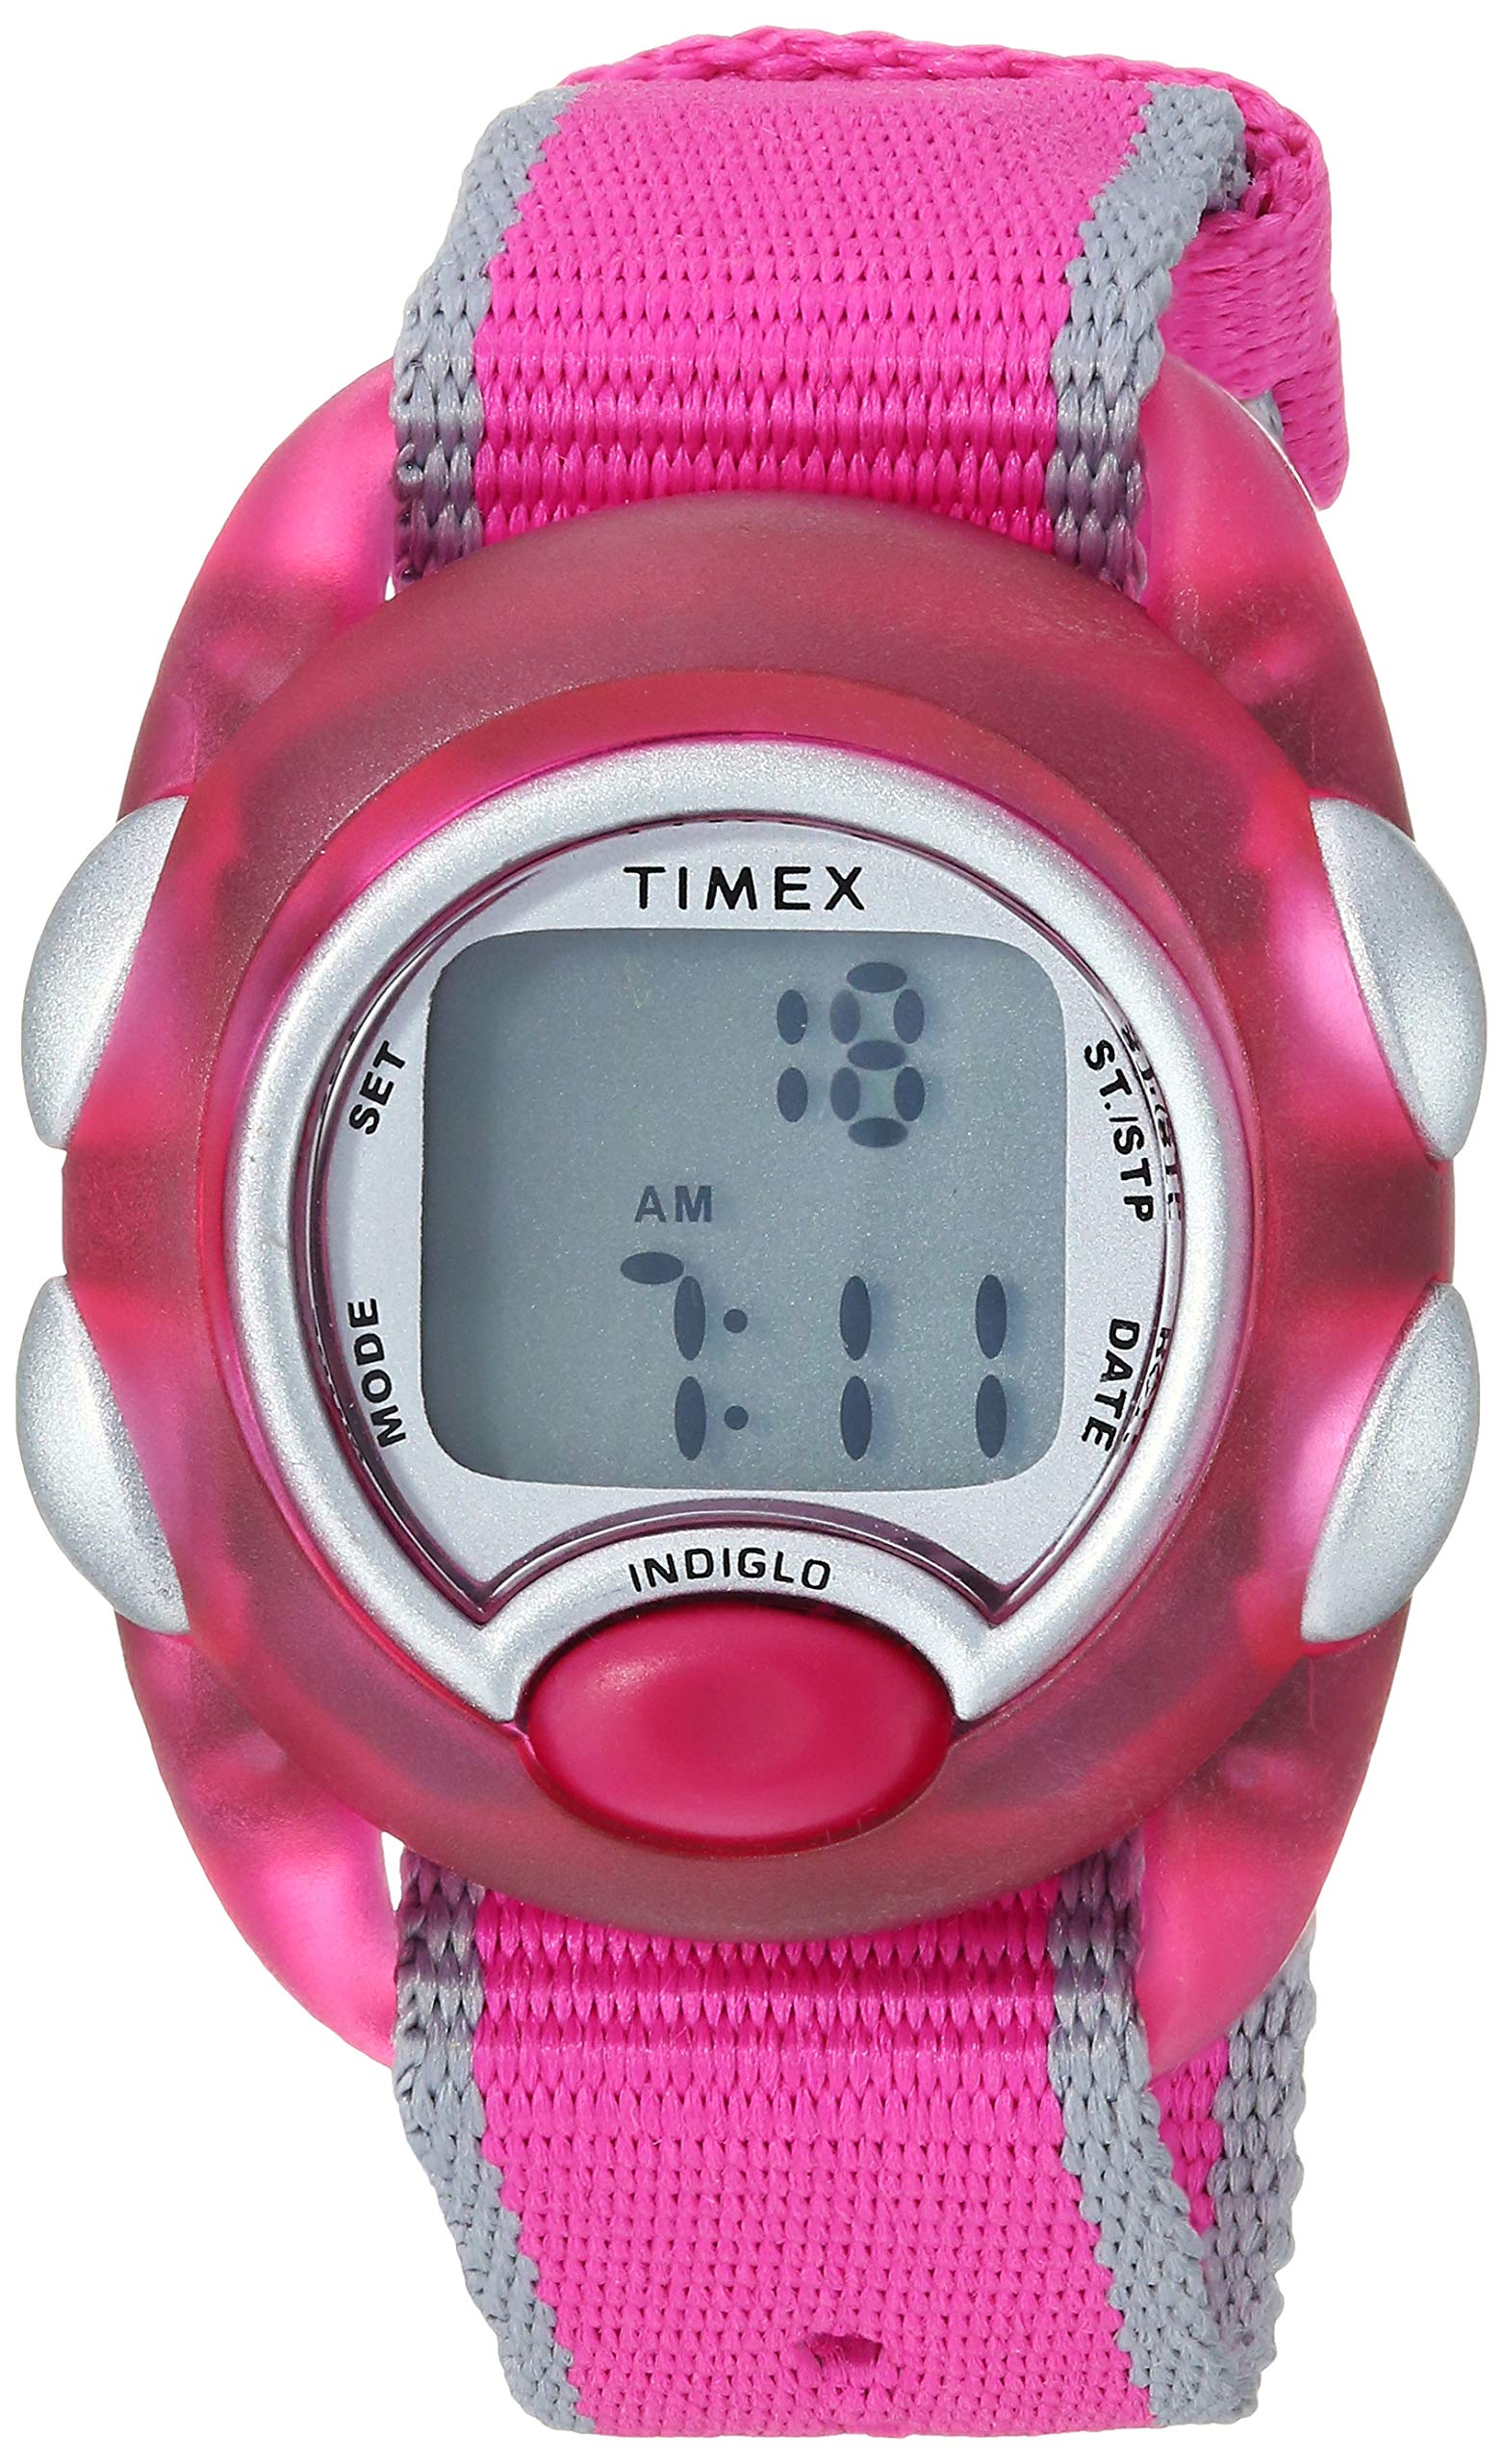 Timex Girls TW2R99000 Time Machines Digital Pink Fabric Strap Watch by Timex